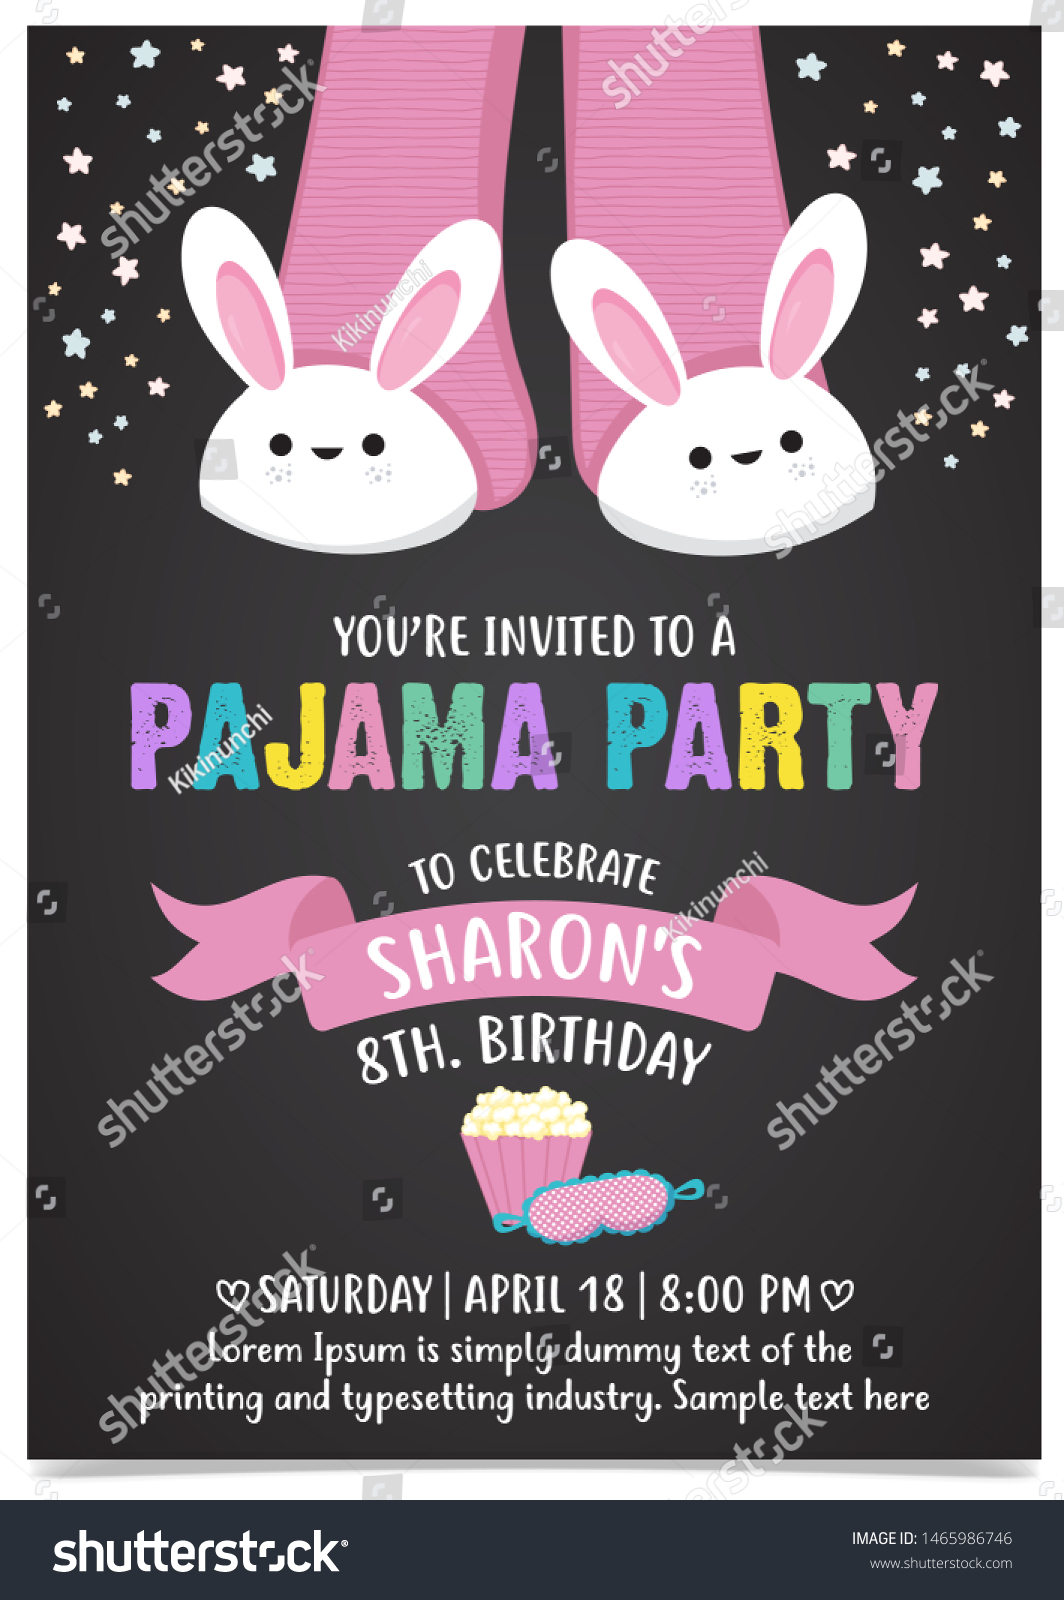 https www shutterstock com image vector pajama party invitation card template 1465986746